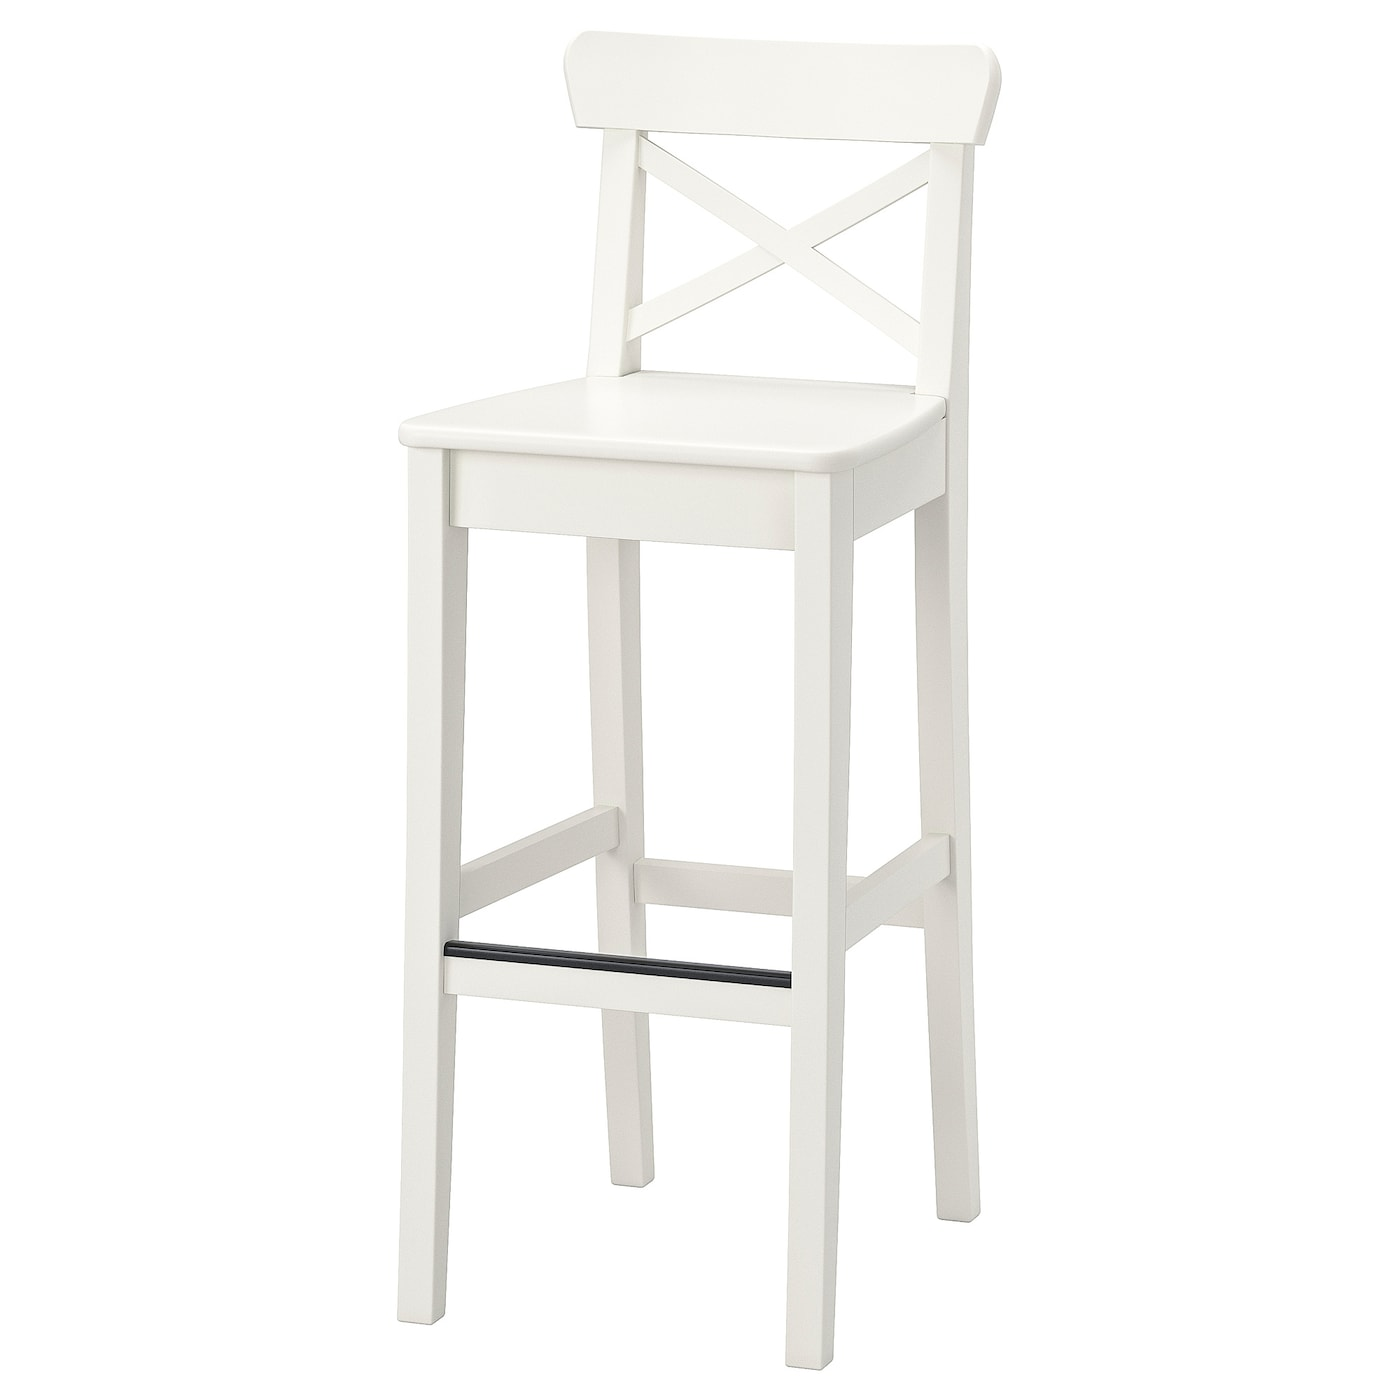 Sensational Bar Stool With Backrest Ingolf White Pabps2019 Chair Design Images Pabps2019Com